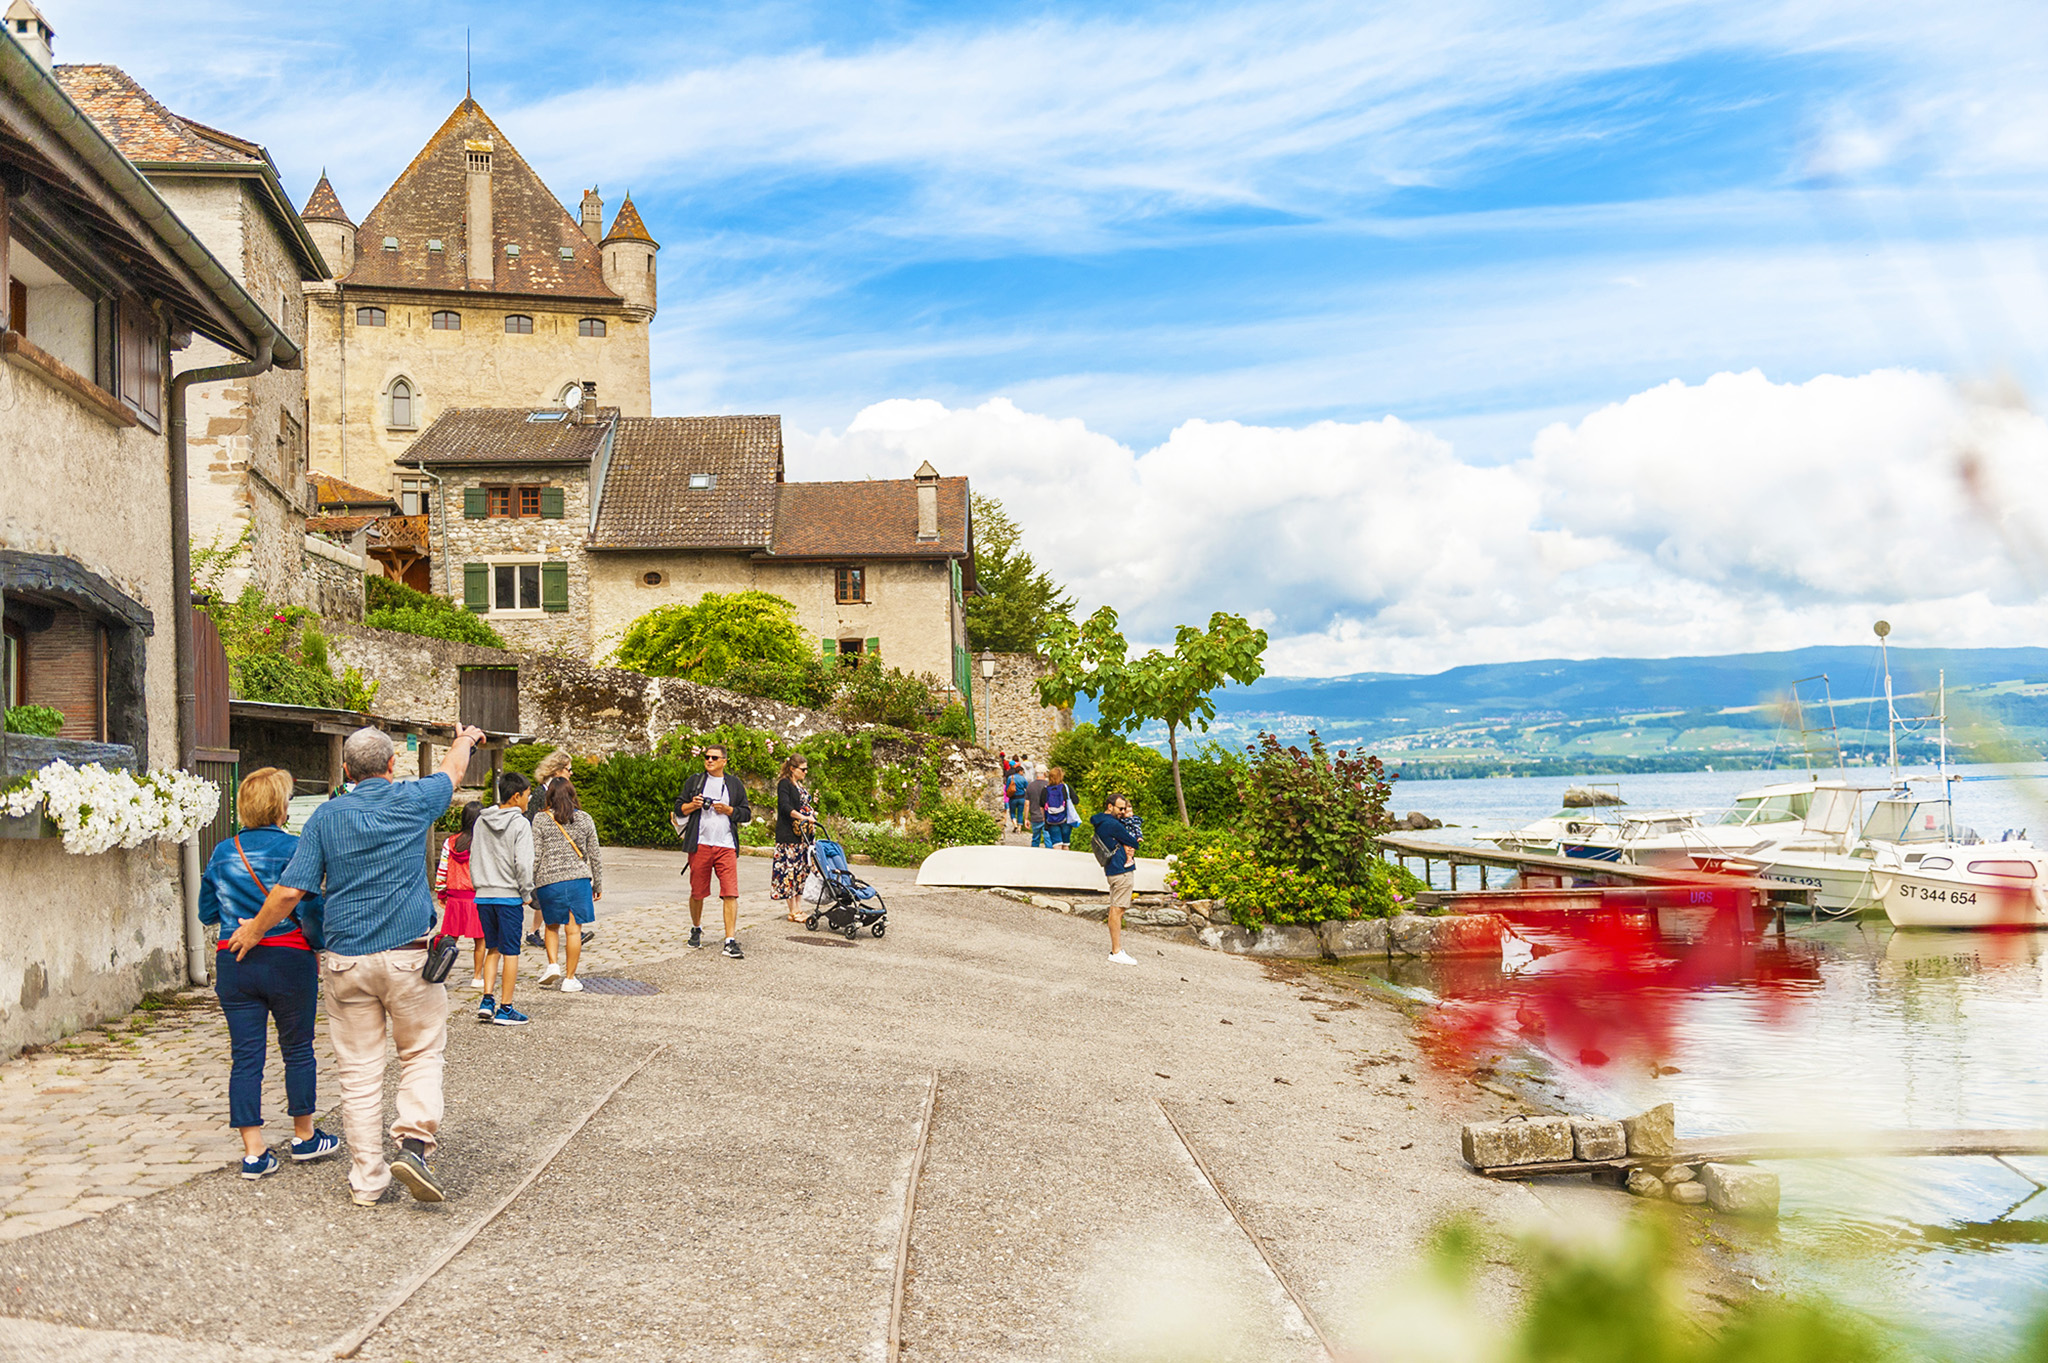 kt_2020_380_Keytours_excursions_Swisstours_yvoire4_2048_10